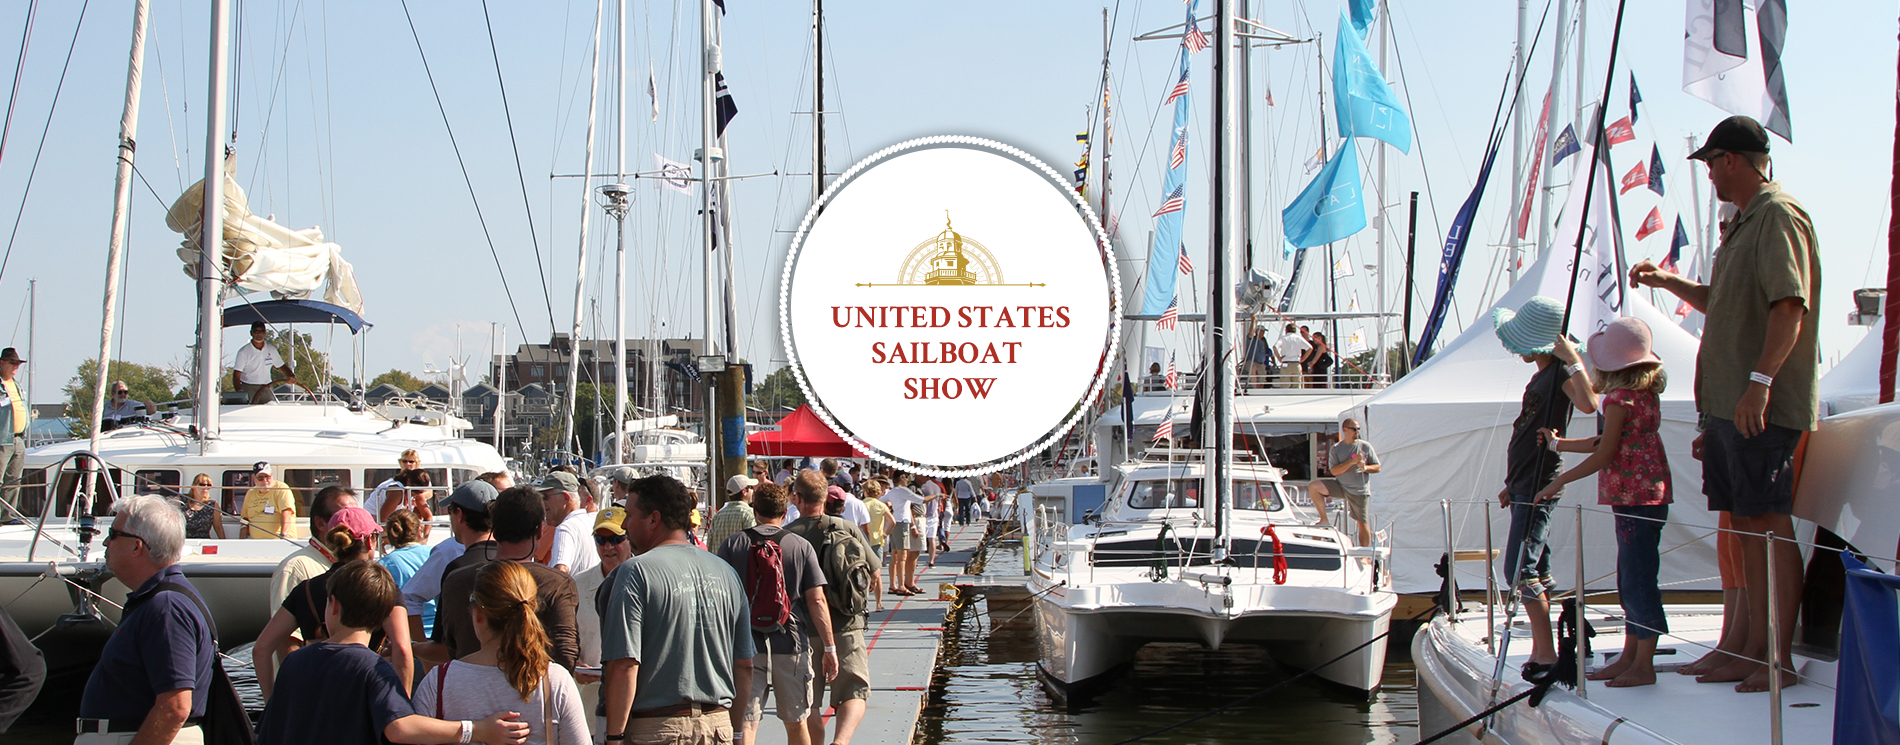 2018 United States Sailboat Show